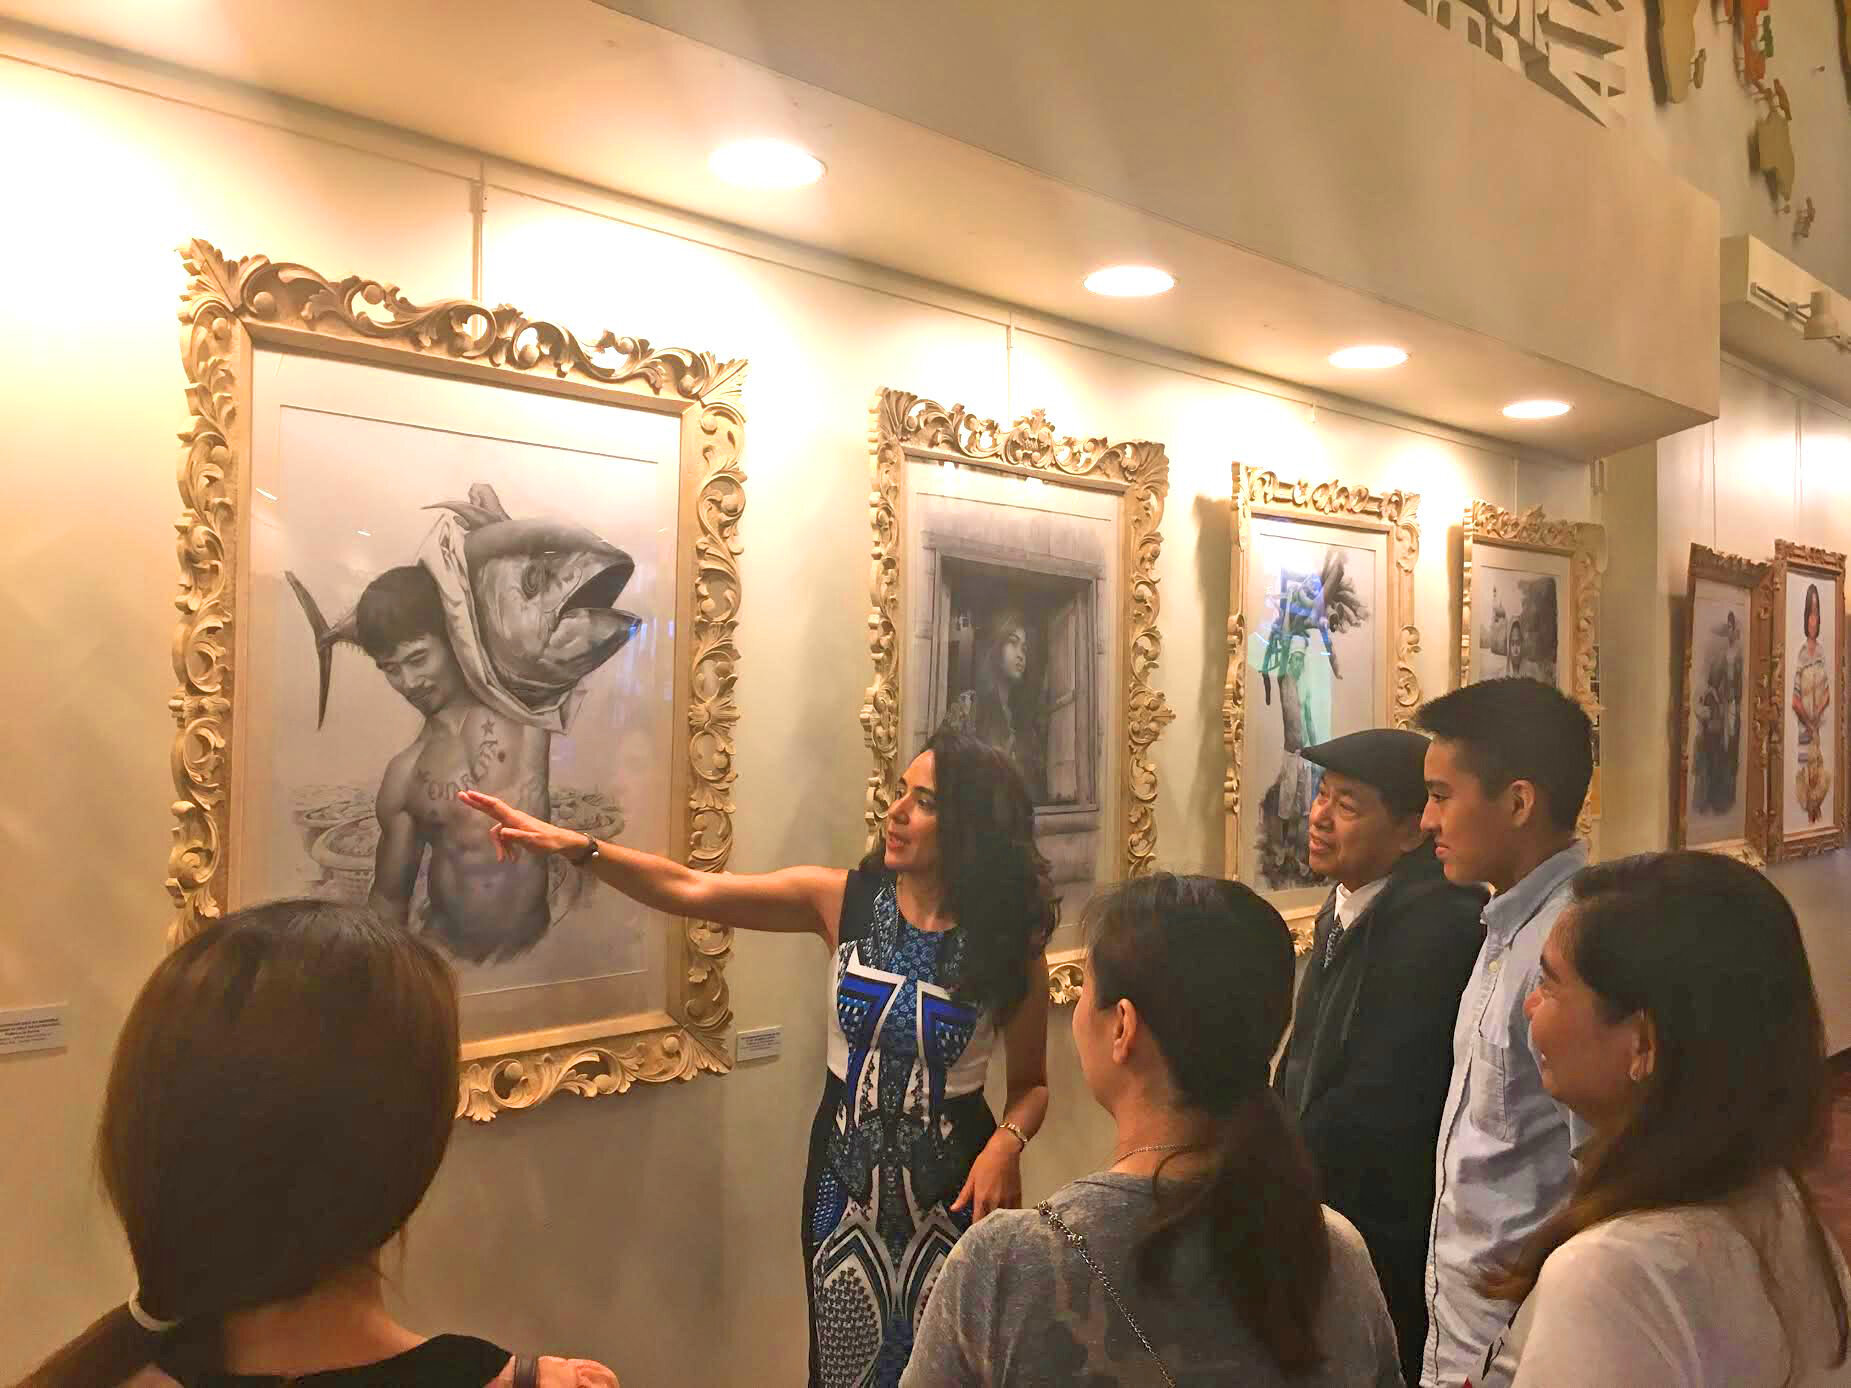 Murga explaining the artworks to the audience at the Philippine Consulate in New York